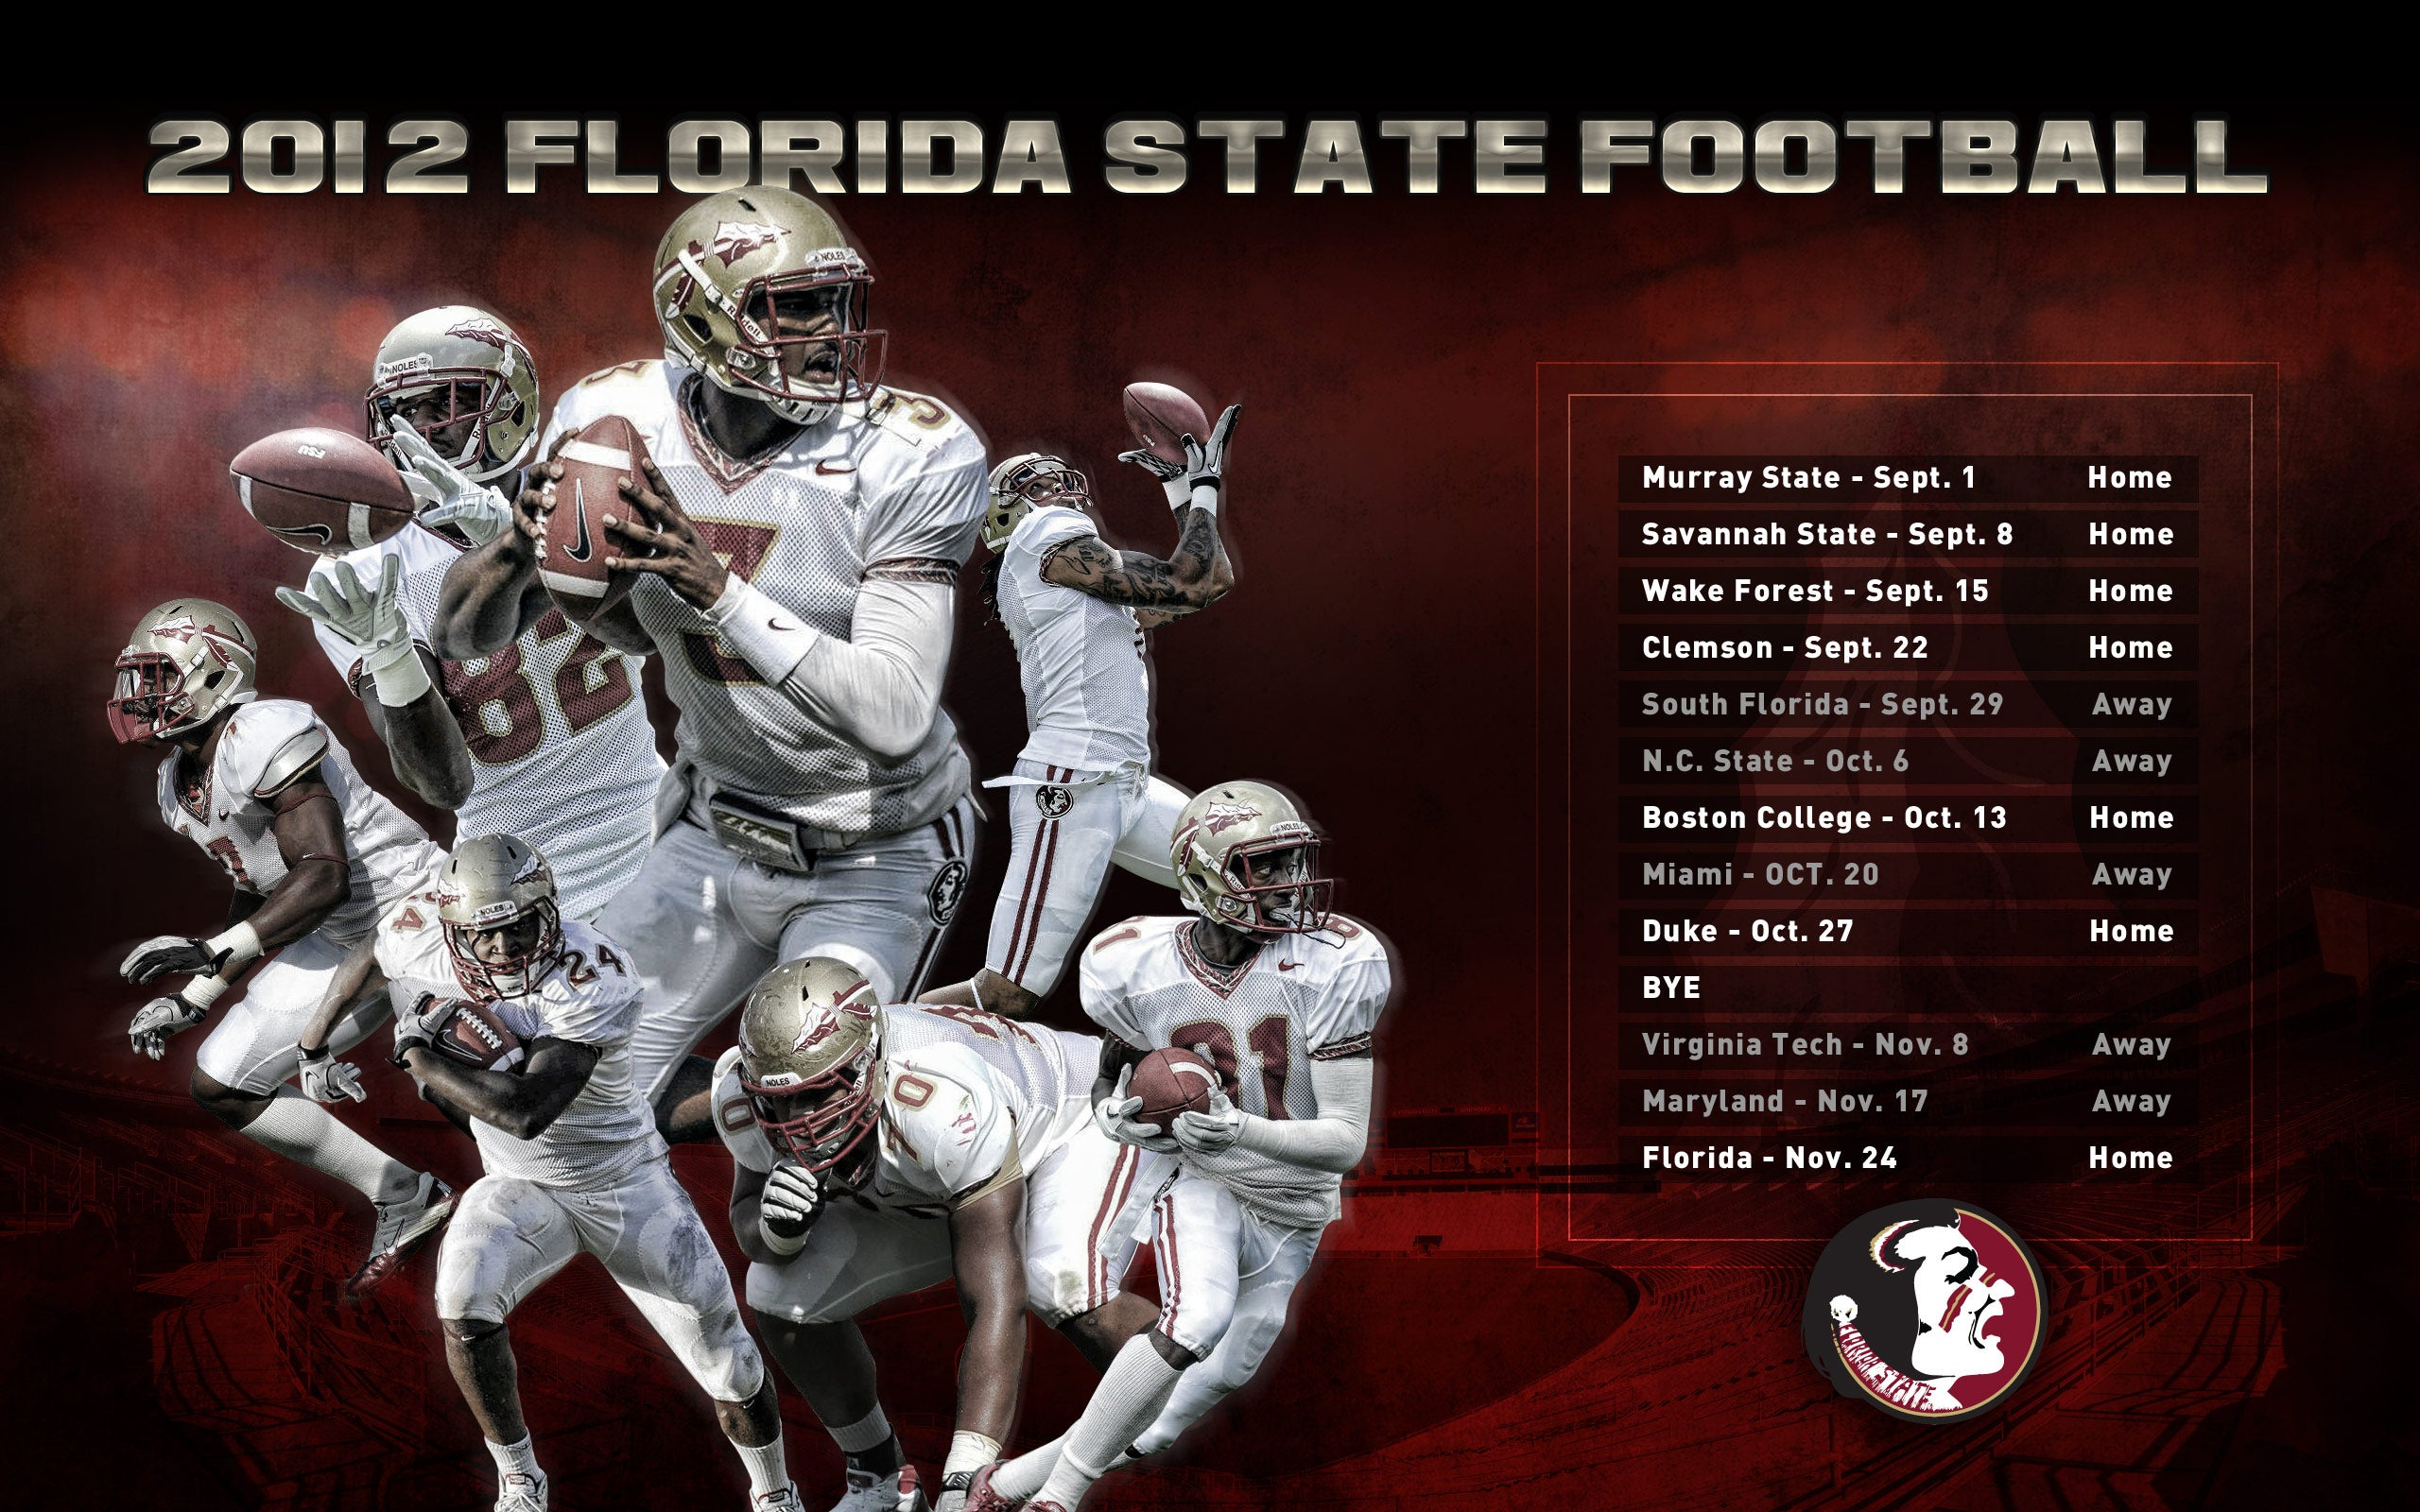 Fsu 2012 football wallpaper copy to clipboard voltagebd Choice Image